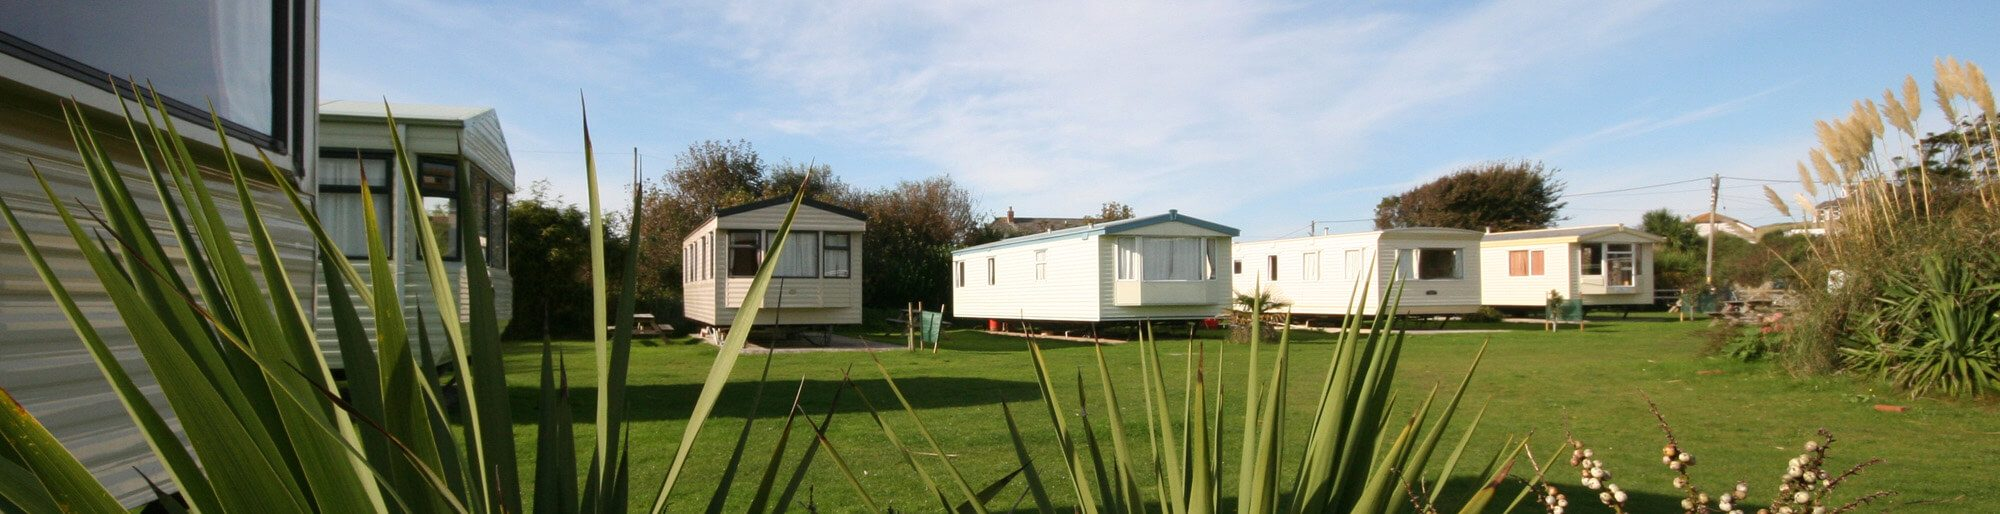 caravans holywell bay 2000x514 - Terms and Conditions